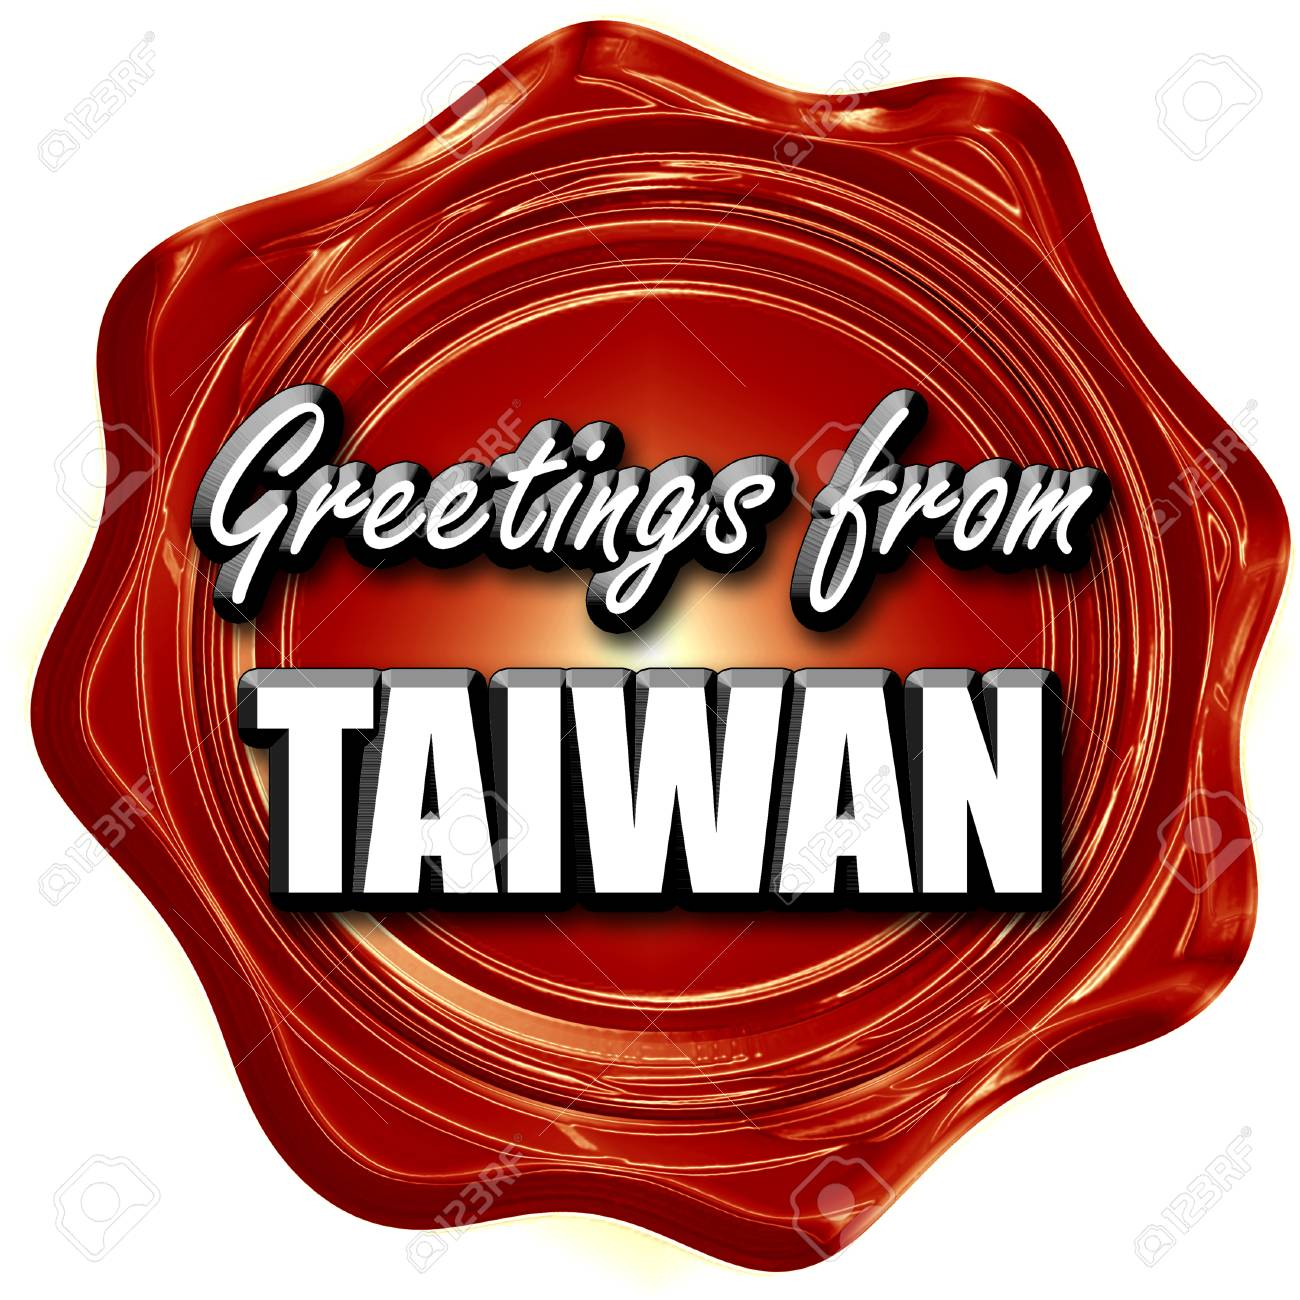 Greetings from taiwan card with some soft highlights stock photo greetings from taiwan card with some soft highlights stock photo 54098717 m4hsunfo